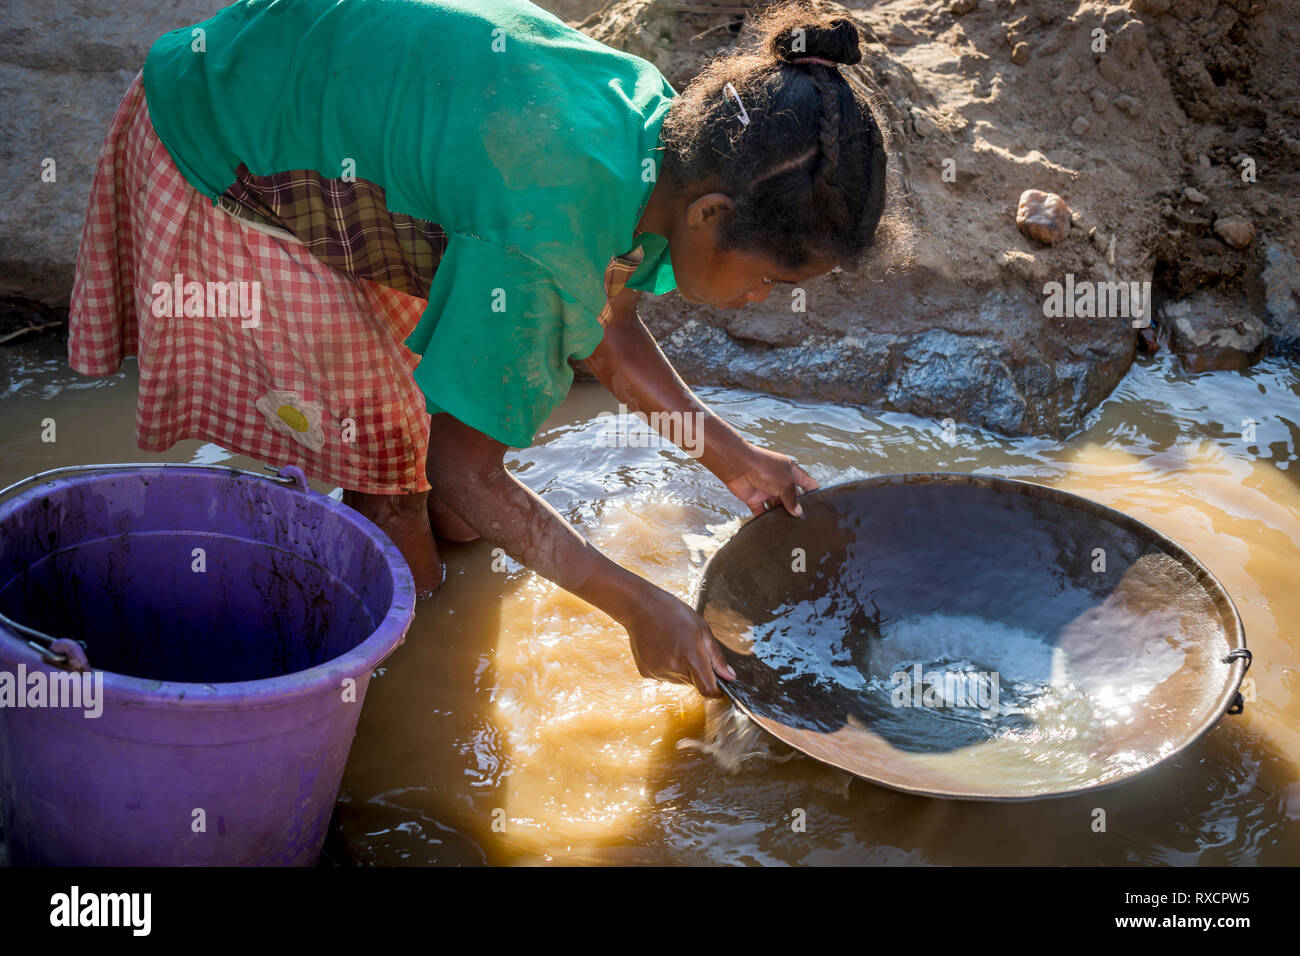 Gold seeker, Girl miss school to pan for gold in the mountains near Ankavandra, Madagascar - Stock Image